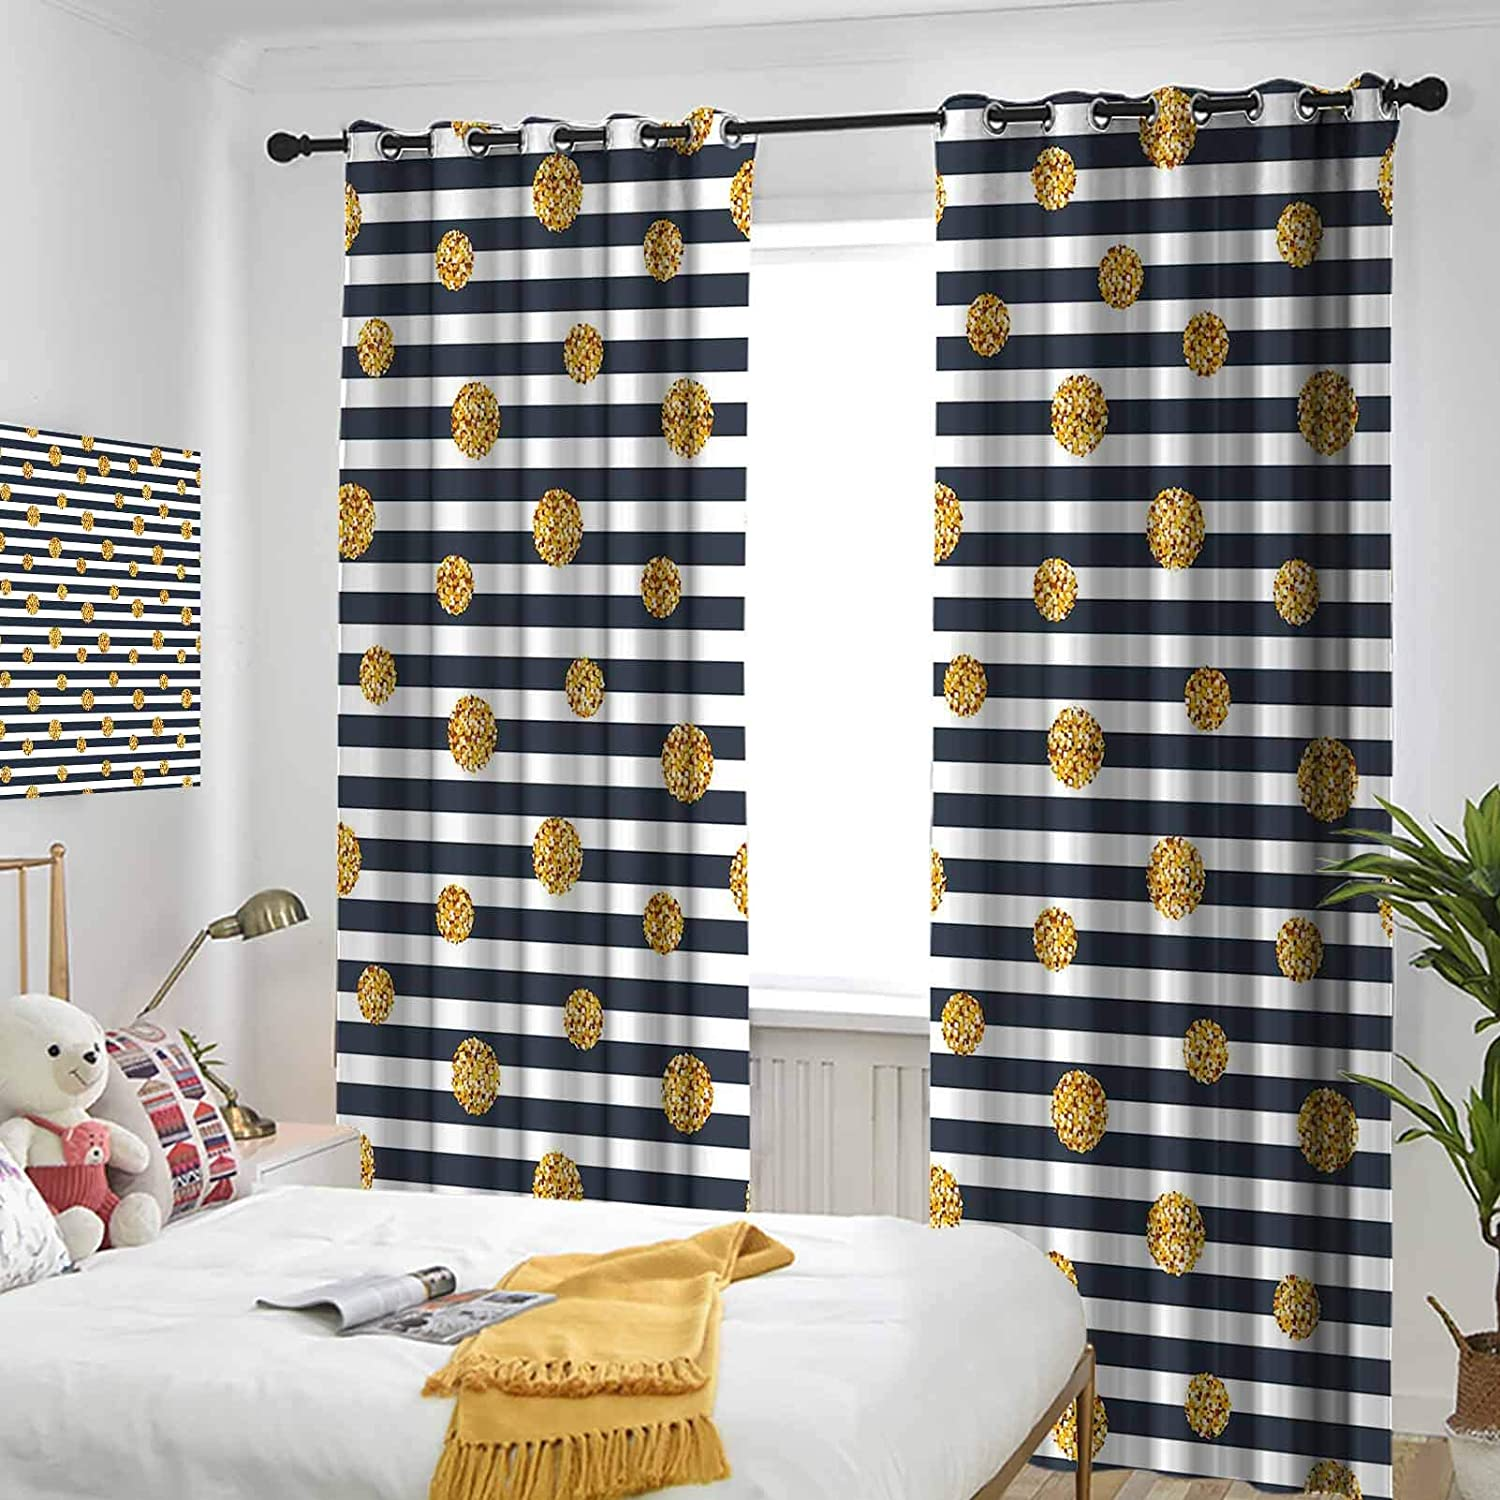 Gold and White Thermal Insulated Oklahoma City Mall Blocking Drapes Curtains Fort Worth Mall Light